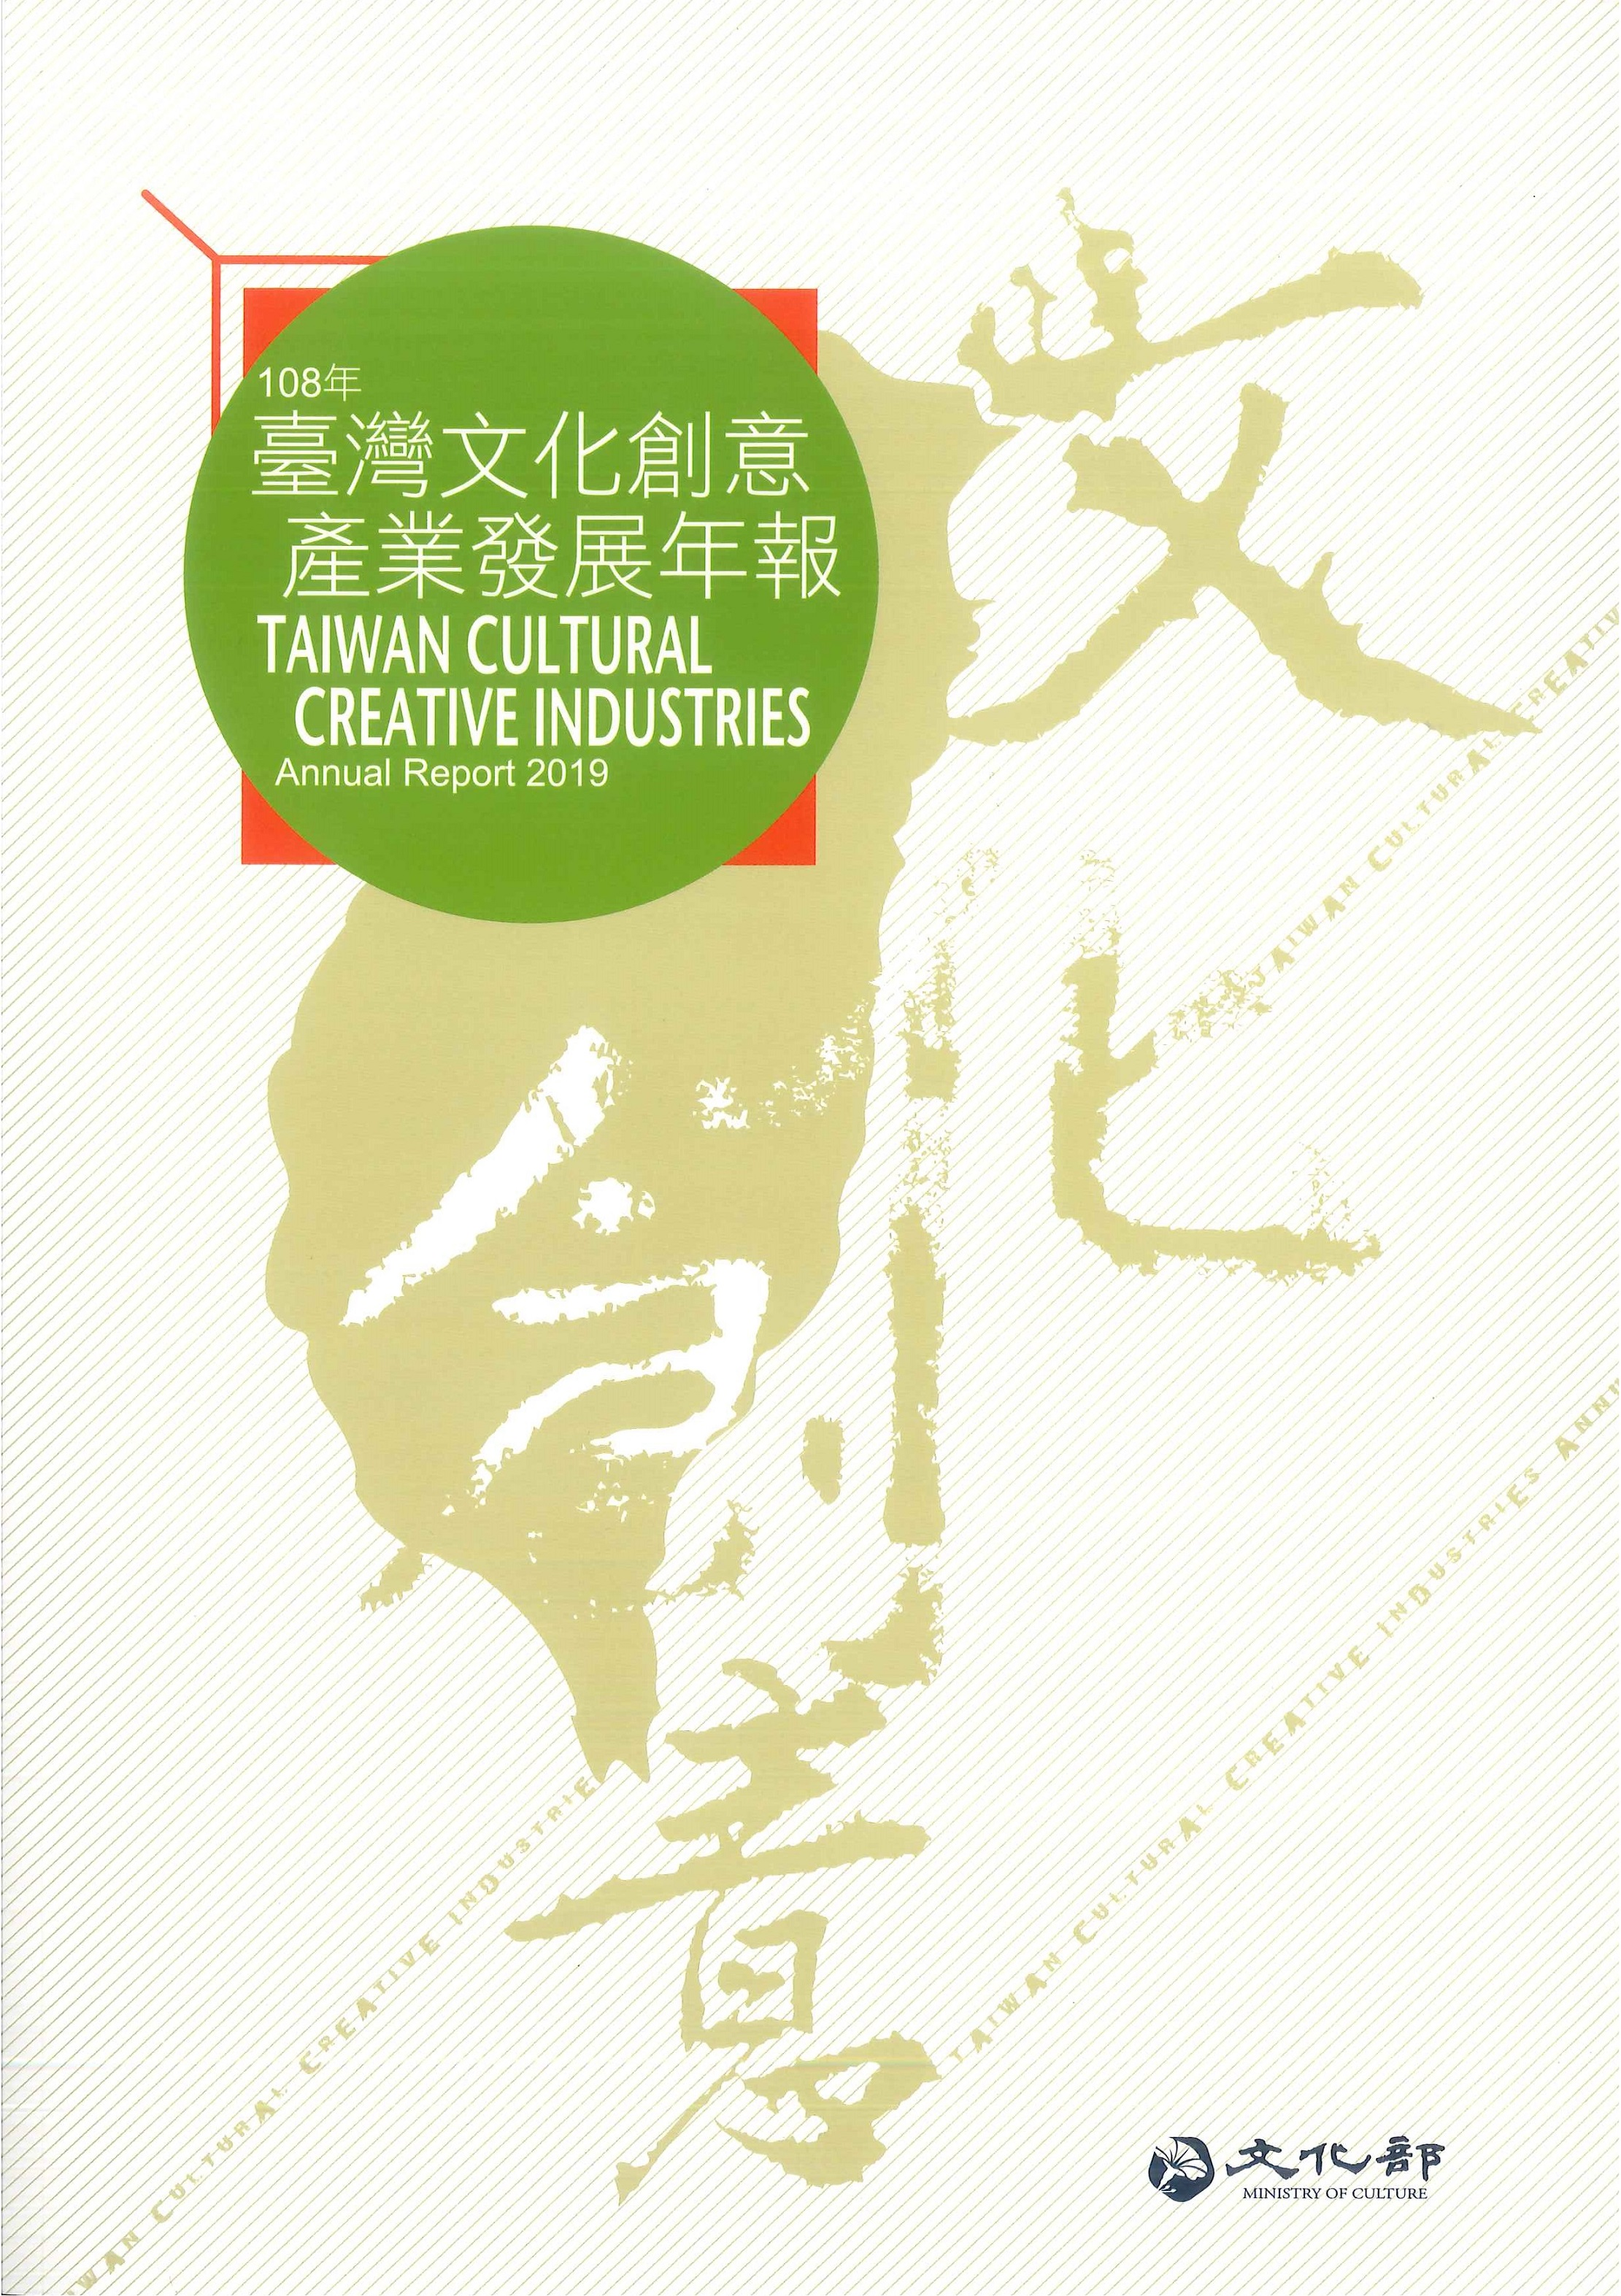 臺灣文化創意產業發展年報=Taiwan cultural & creative industries annual report